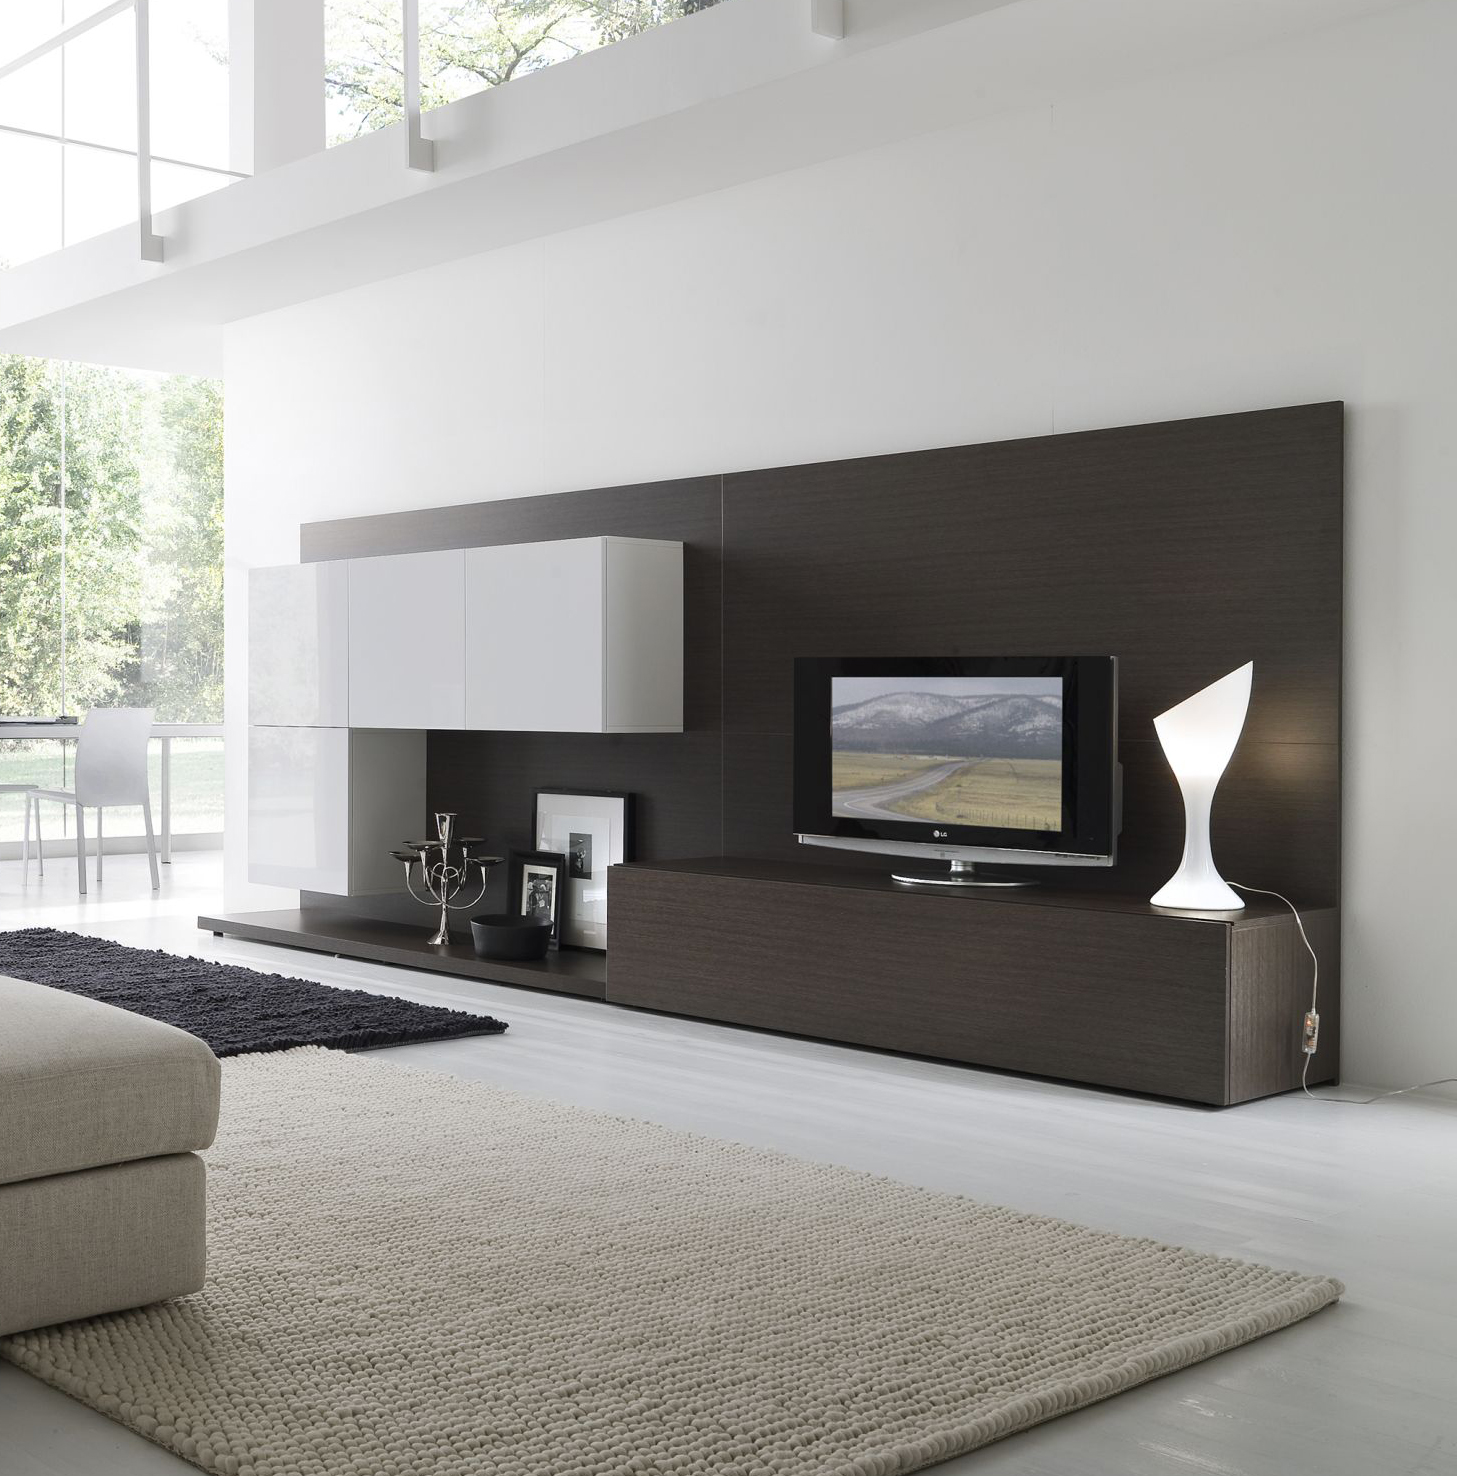 35 contemporary living room design the wow style - Contemporary design for small living room ...